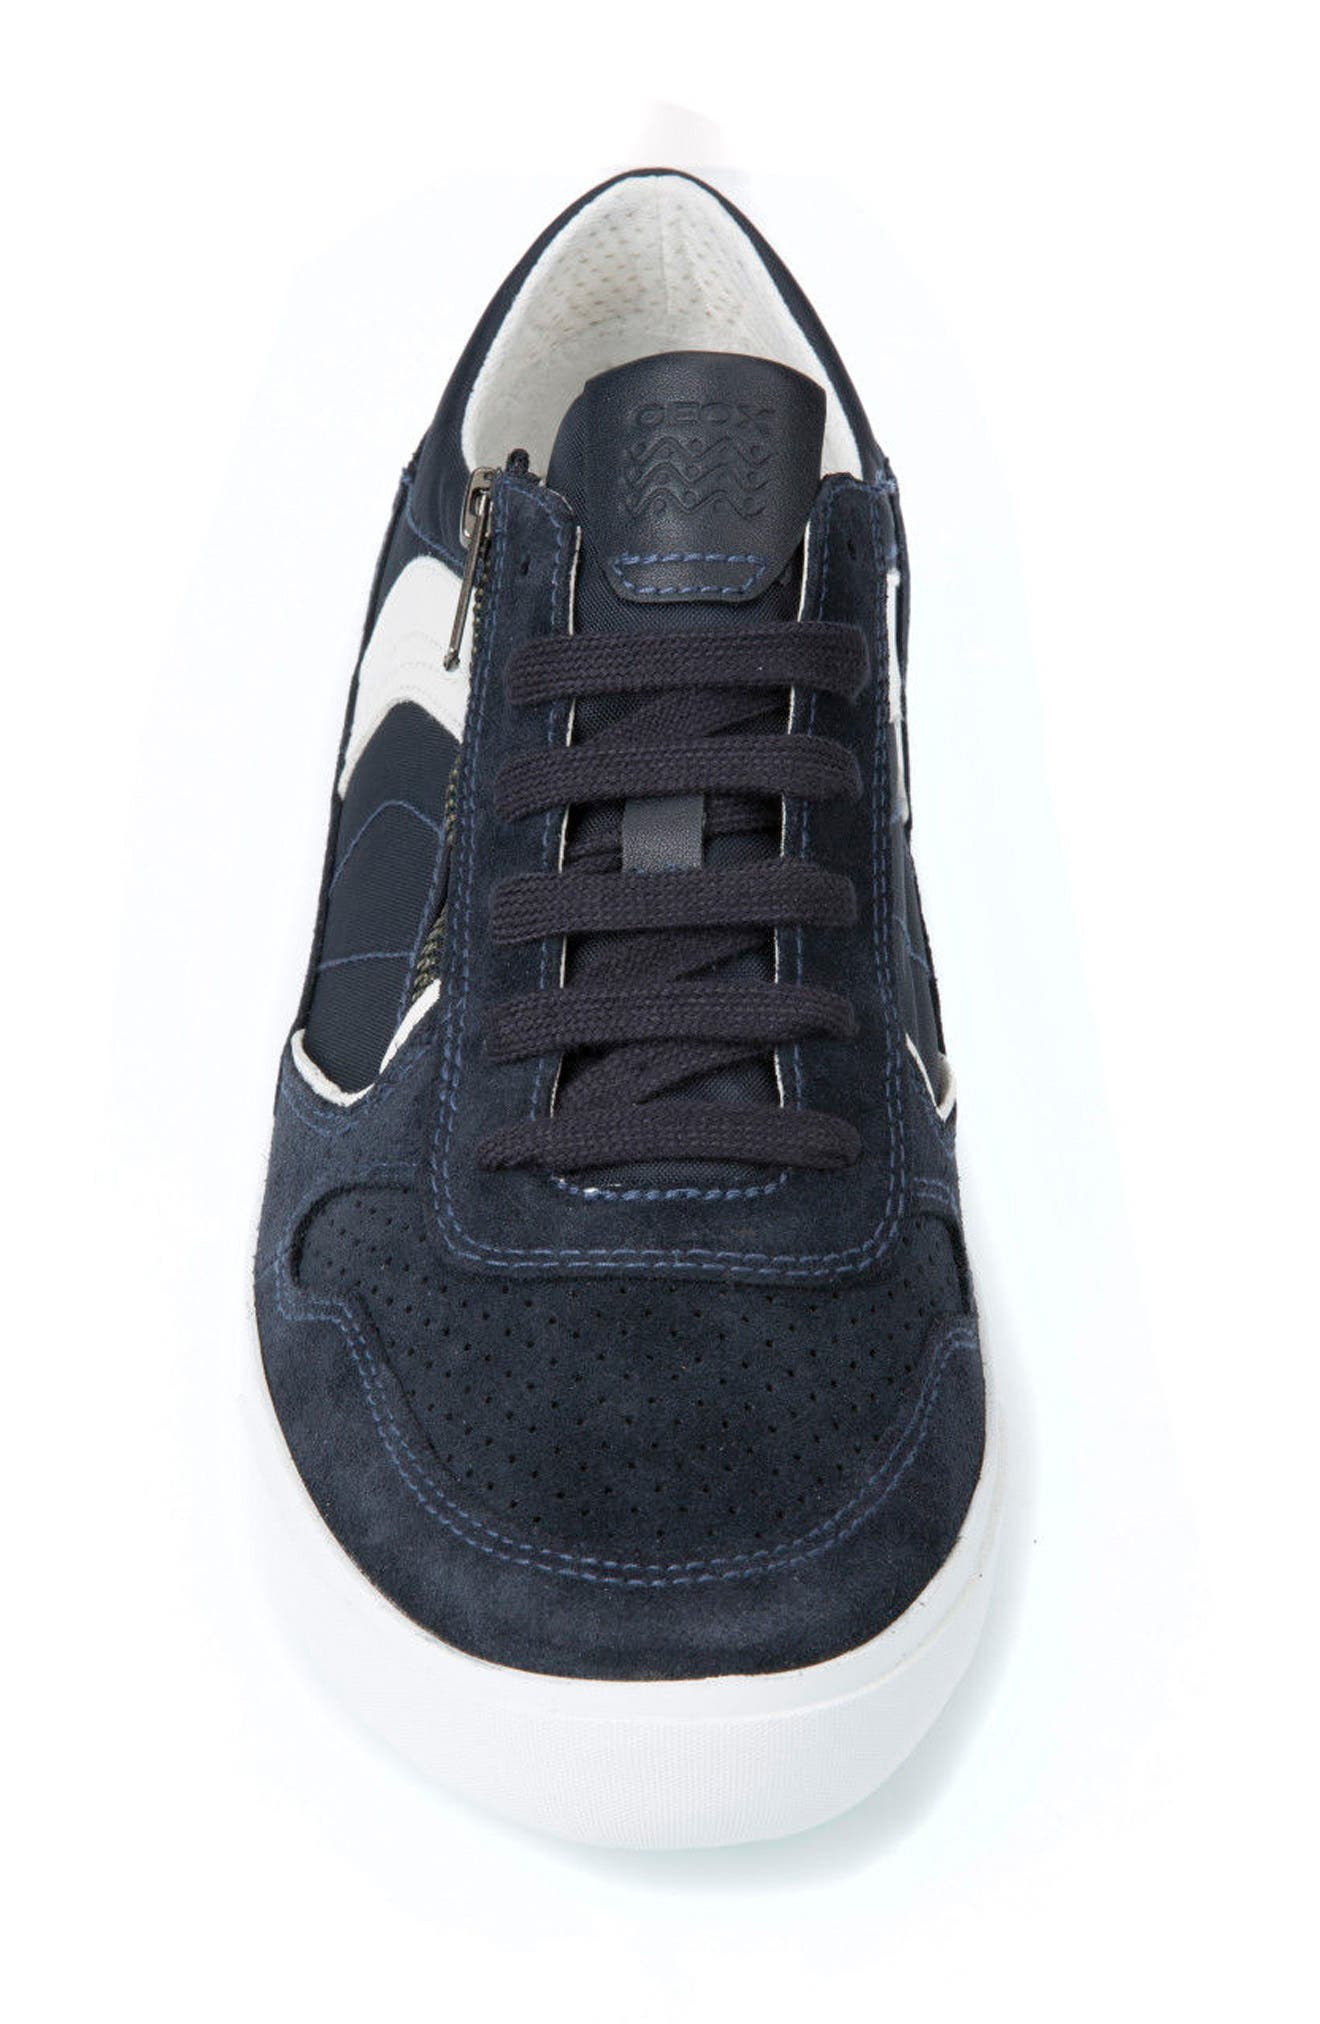 Box 33 Low Top Zip Sneaker,                             Alternate thumbnail 4, color,                             Navy